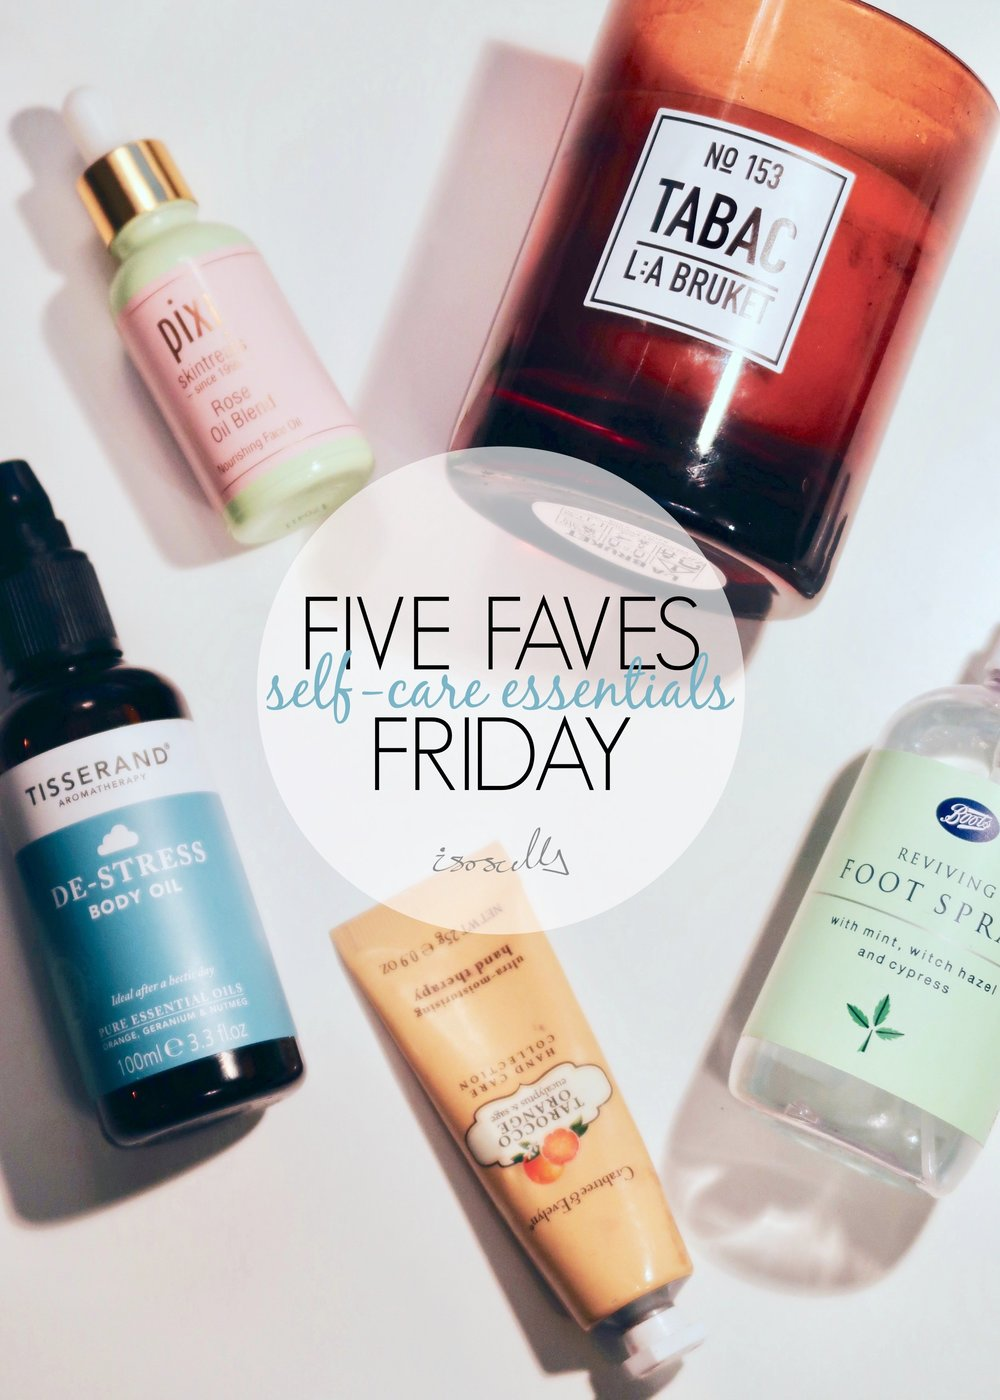 Five Faves Friday - Self-care Essentials by Isoscella